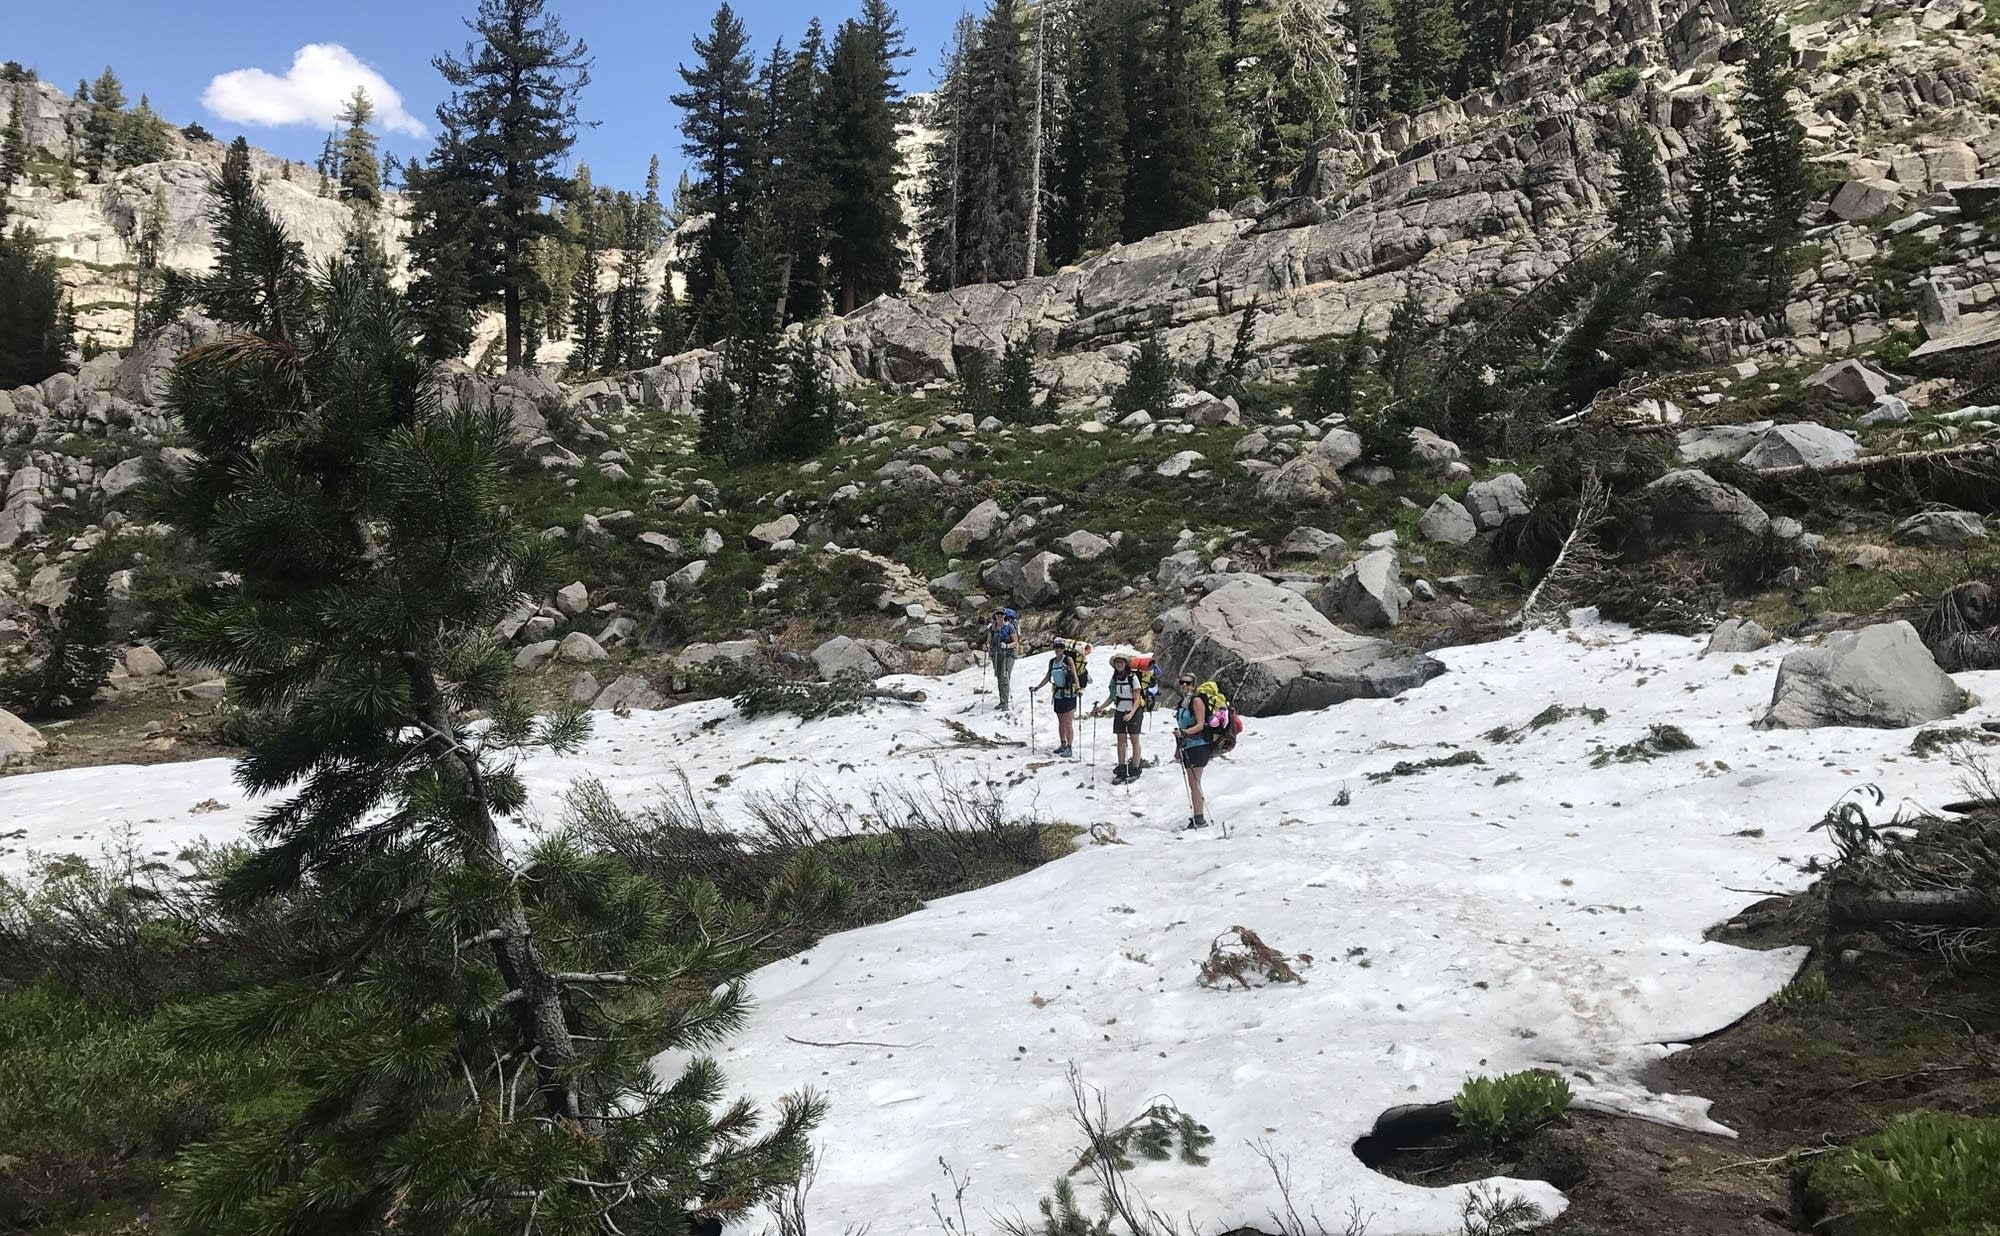 The hiking group traversed snow